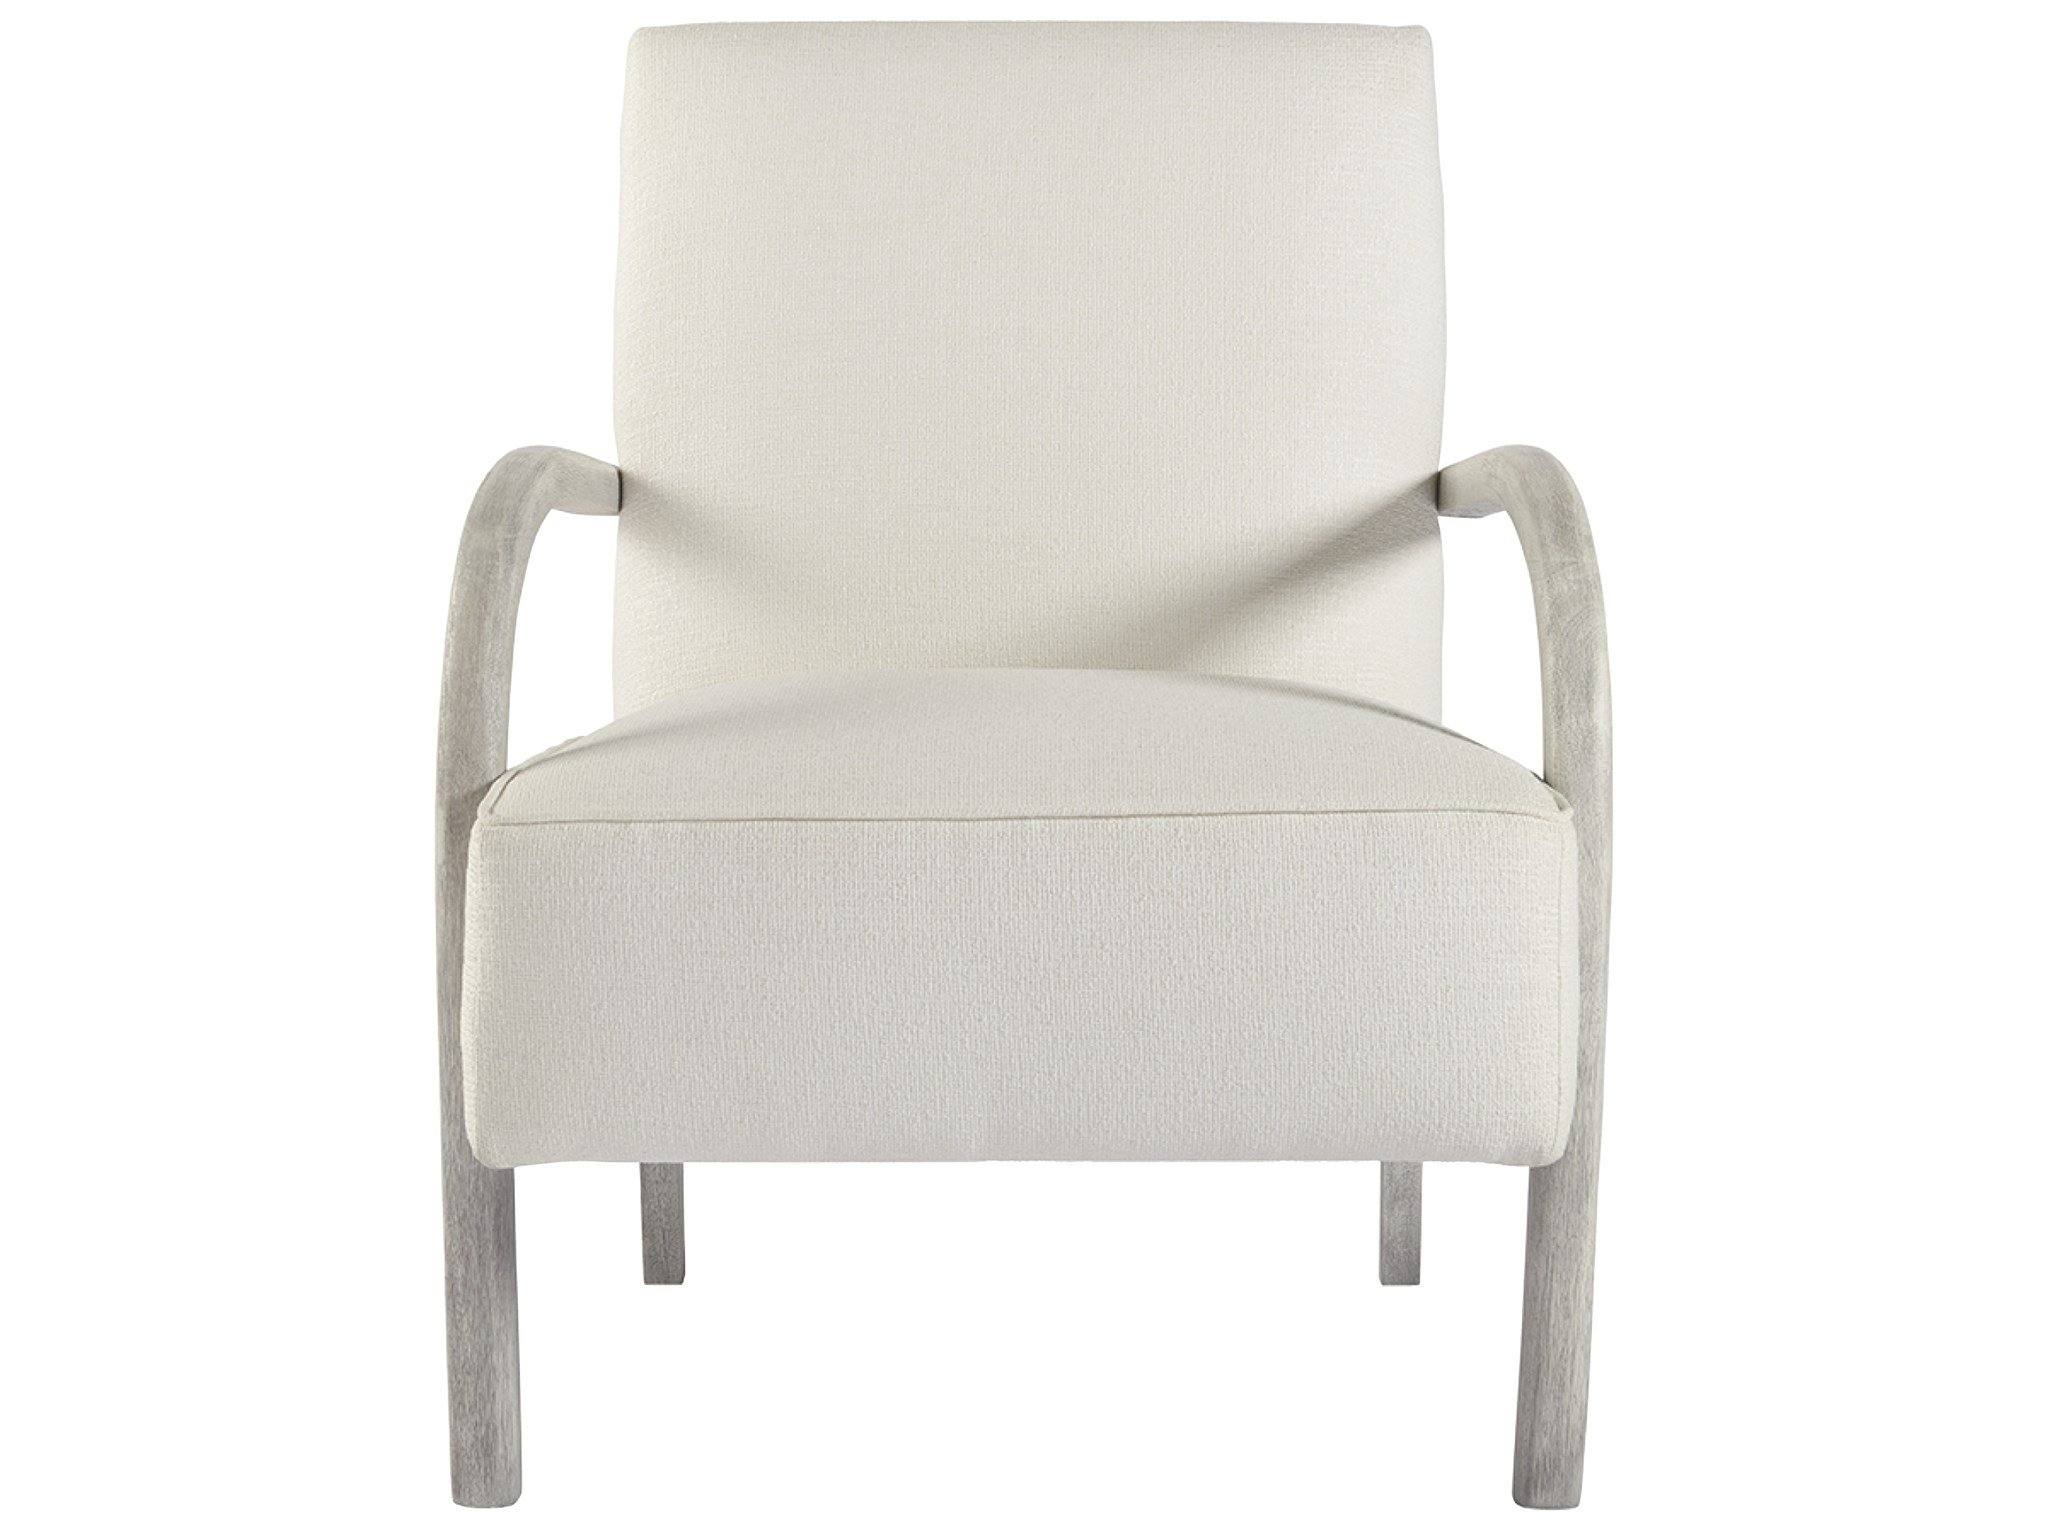 Bahia Honda Accent Chair - Special Order